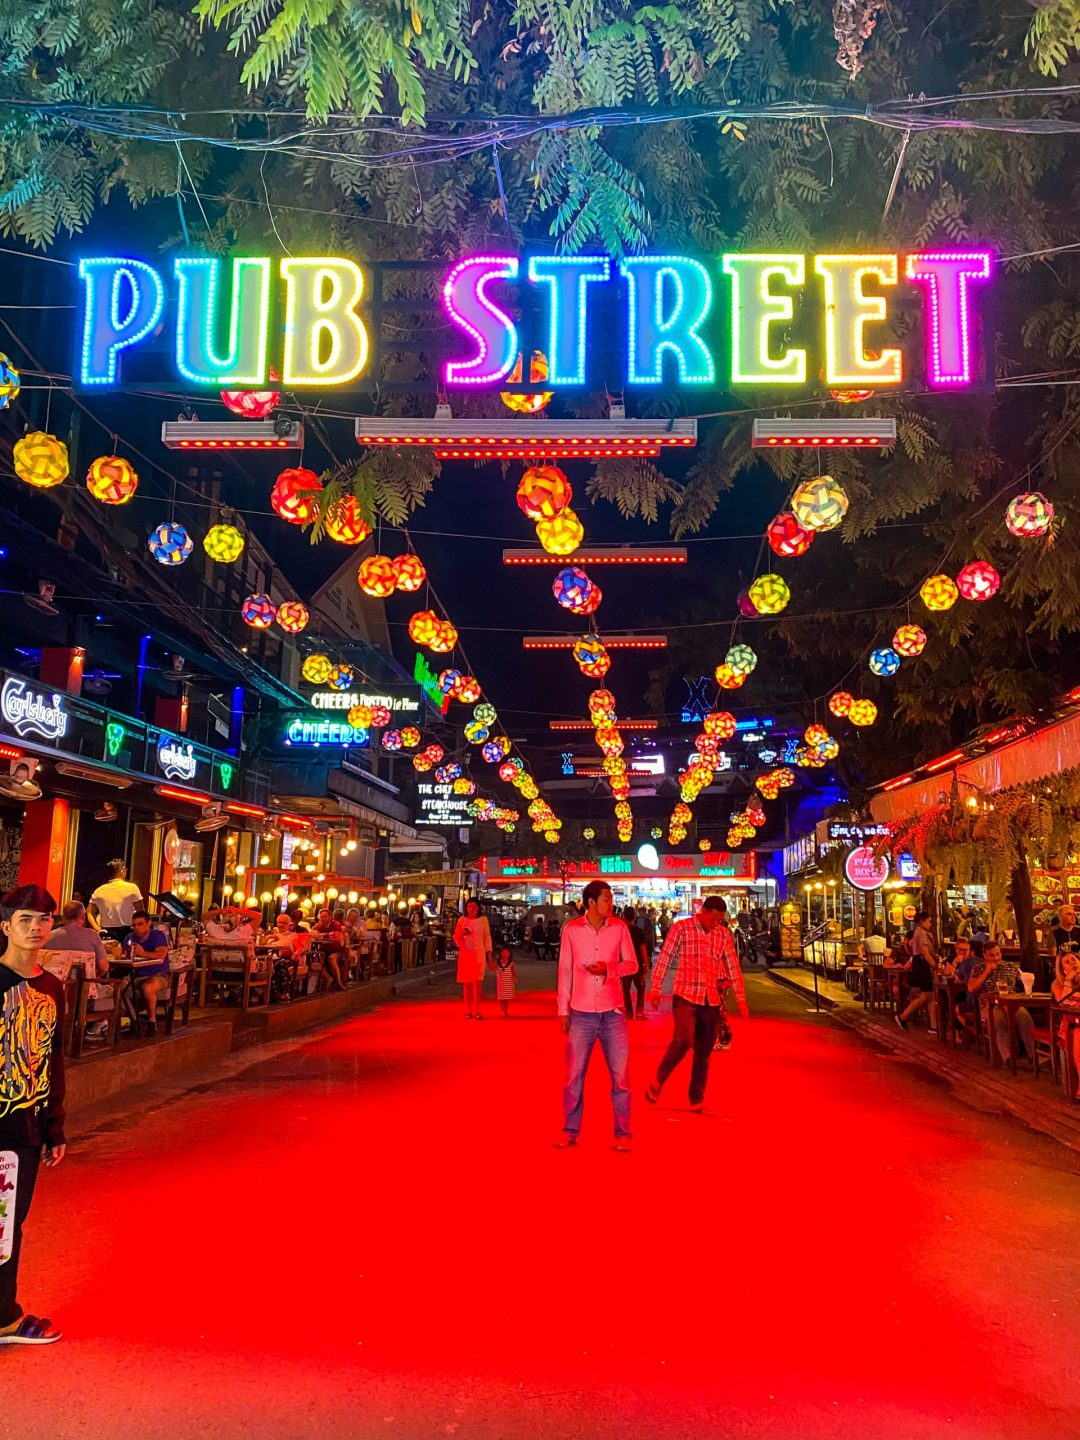 Pub Street neon sign in Siem Reap, Cambodia